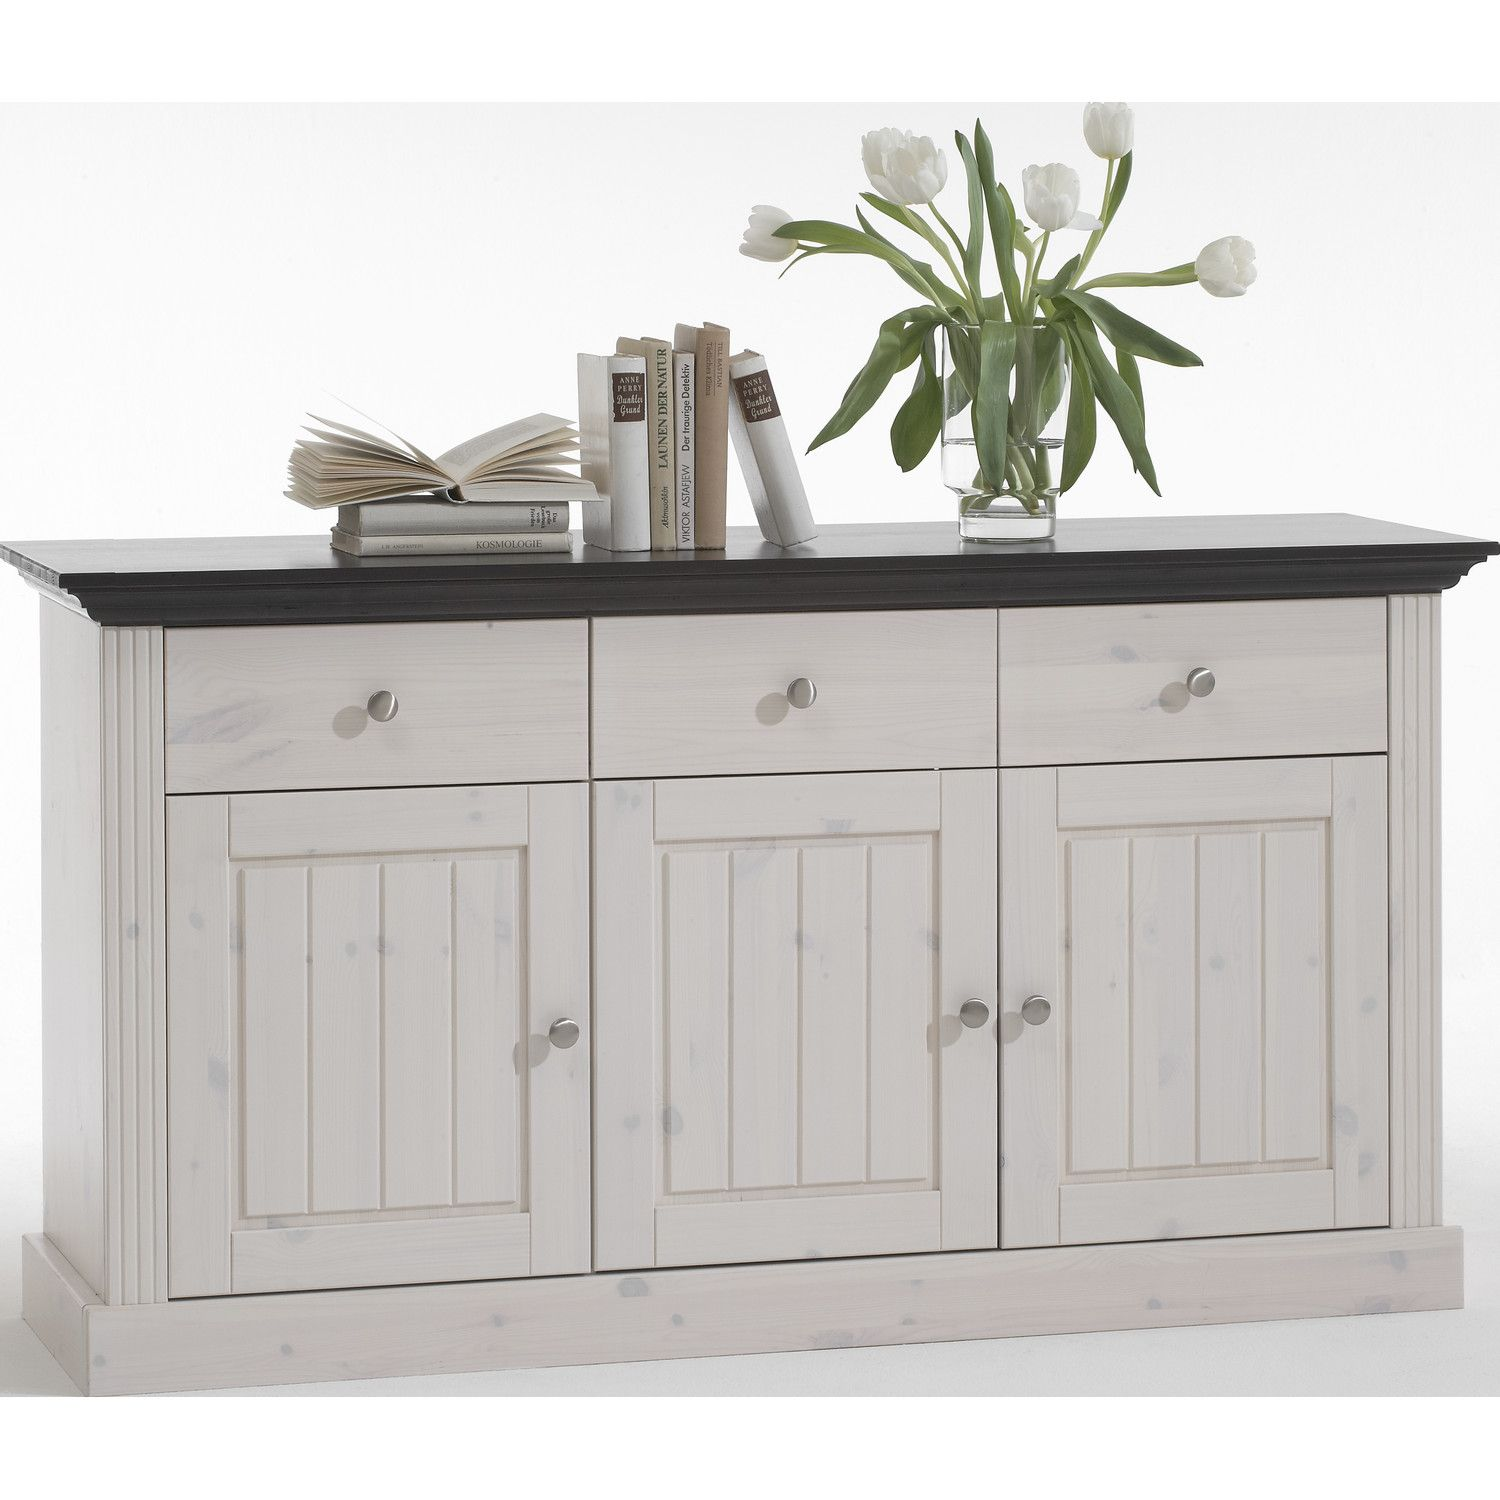 Furlong 12 Door, 12 Drawer Sideboard  Wayfair UK  White sideboard